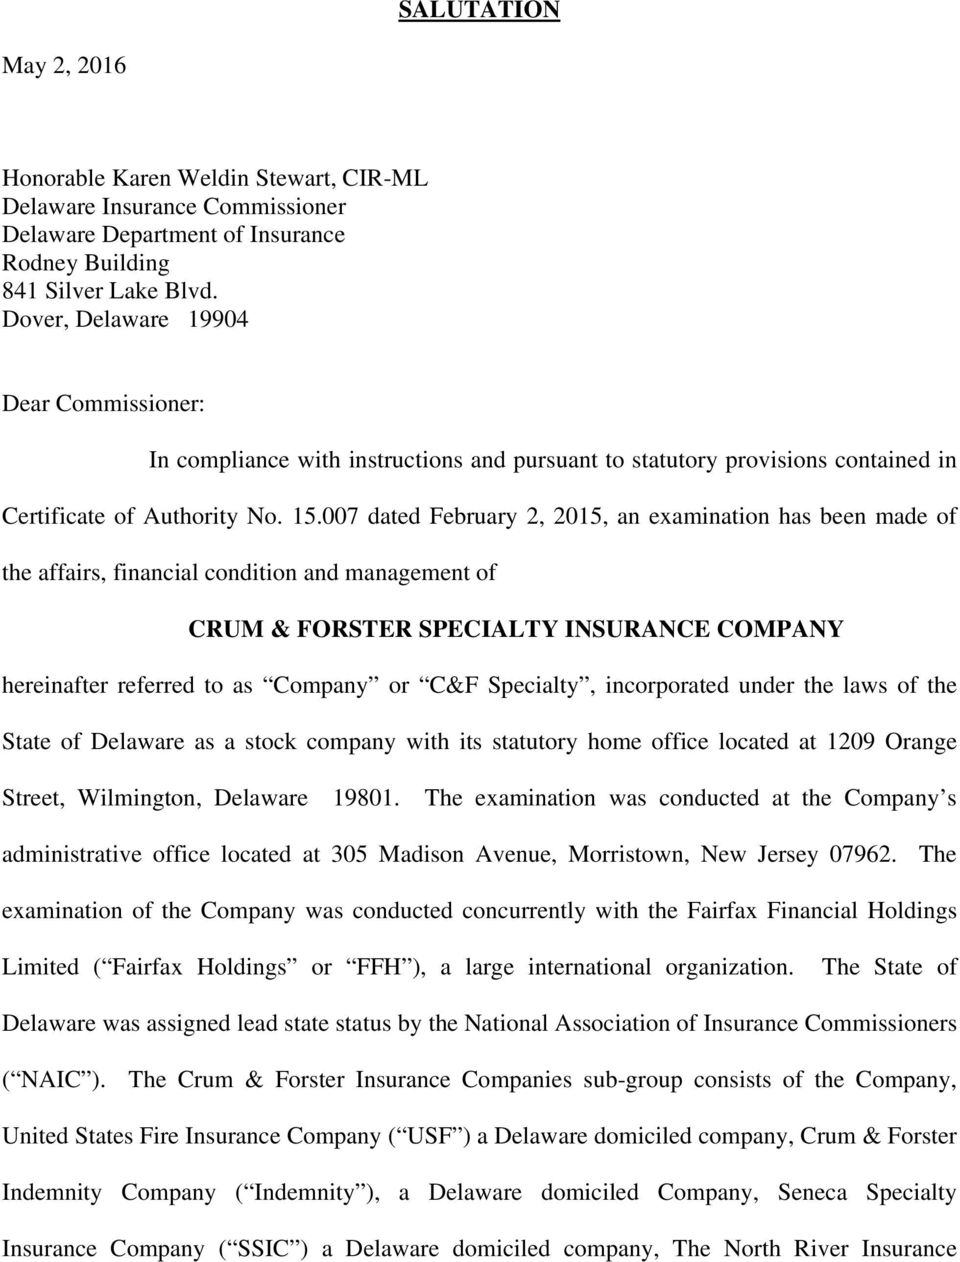 007 dated February 2, 2015, an examination has been made of the affairs, financial condition and management of CRUM & FORSTER SPECIALTY INSURANCE COMPANY hereinafter referred to as Company or C&F